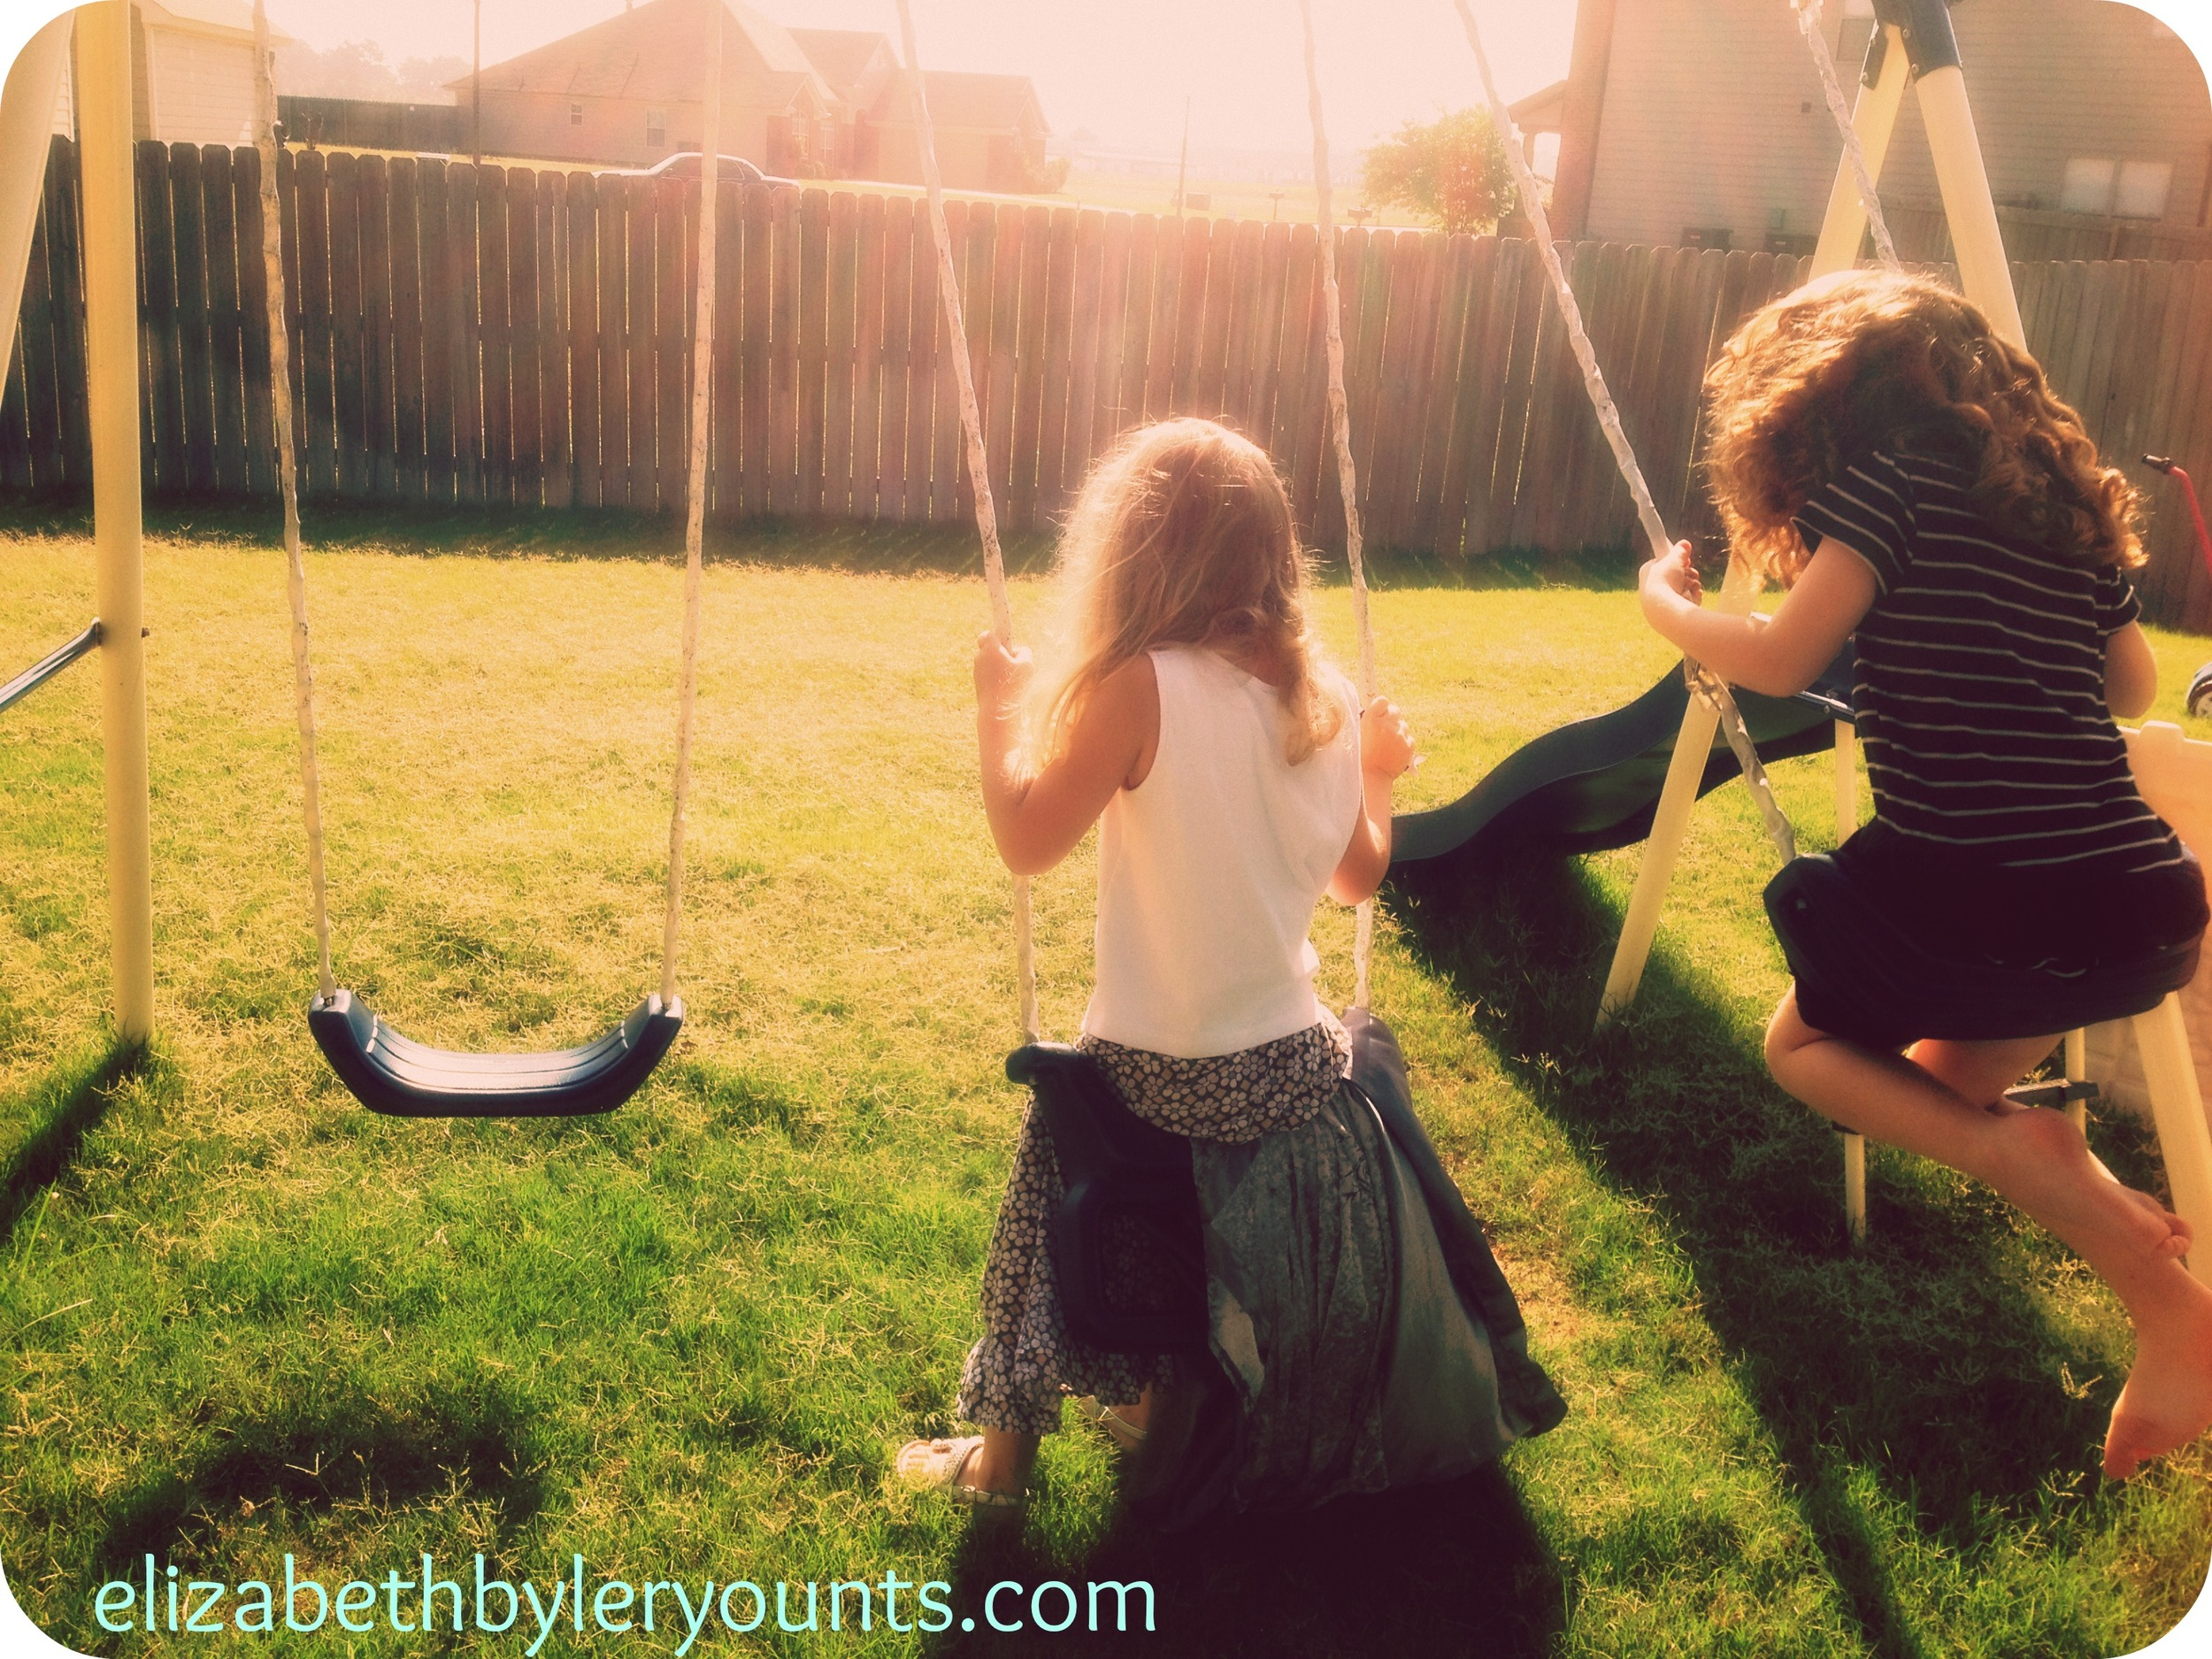 My daughter Curly swinging in our backyard with one of her besties...a military brat living on the other side of the world now.